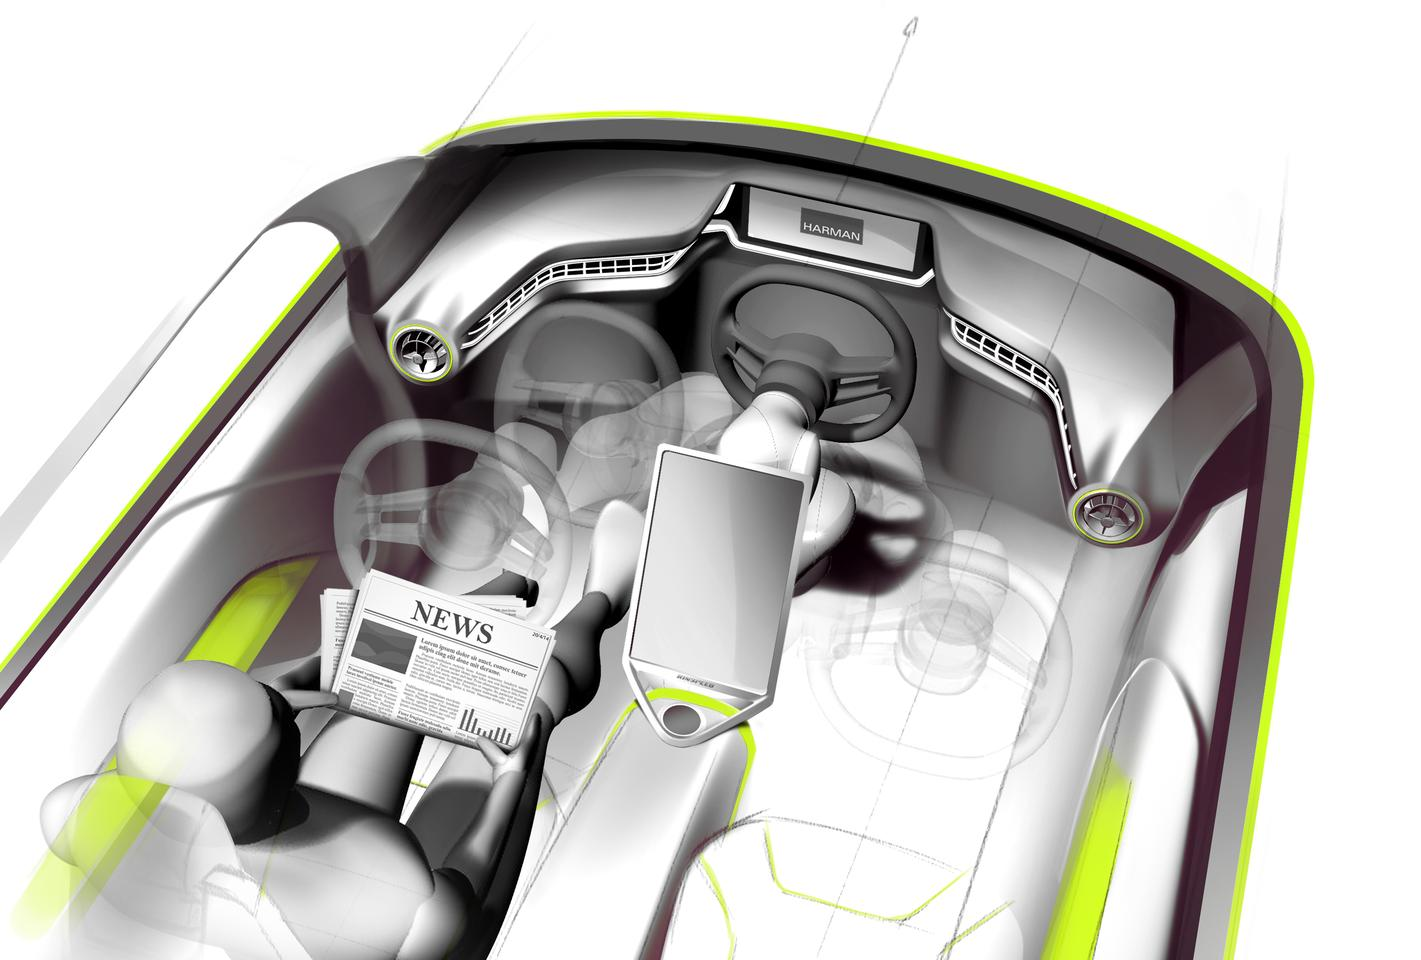 Rendering of the Budii interior and its adjustable steering wheel